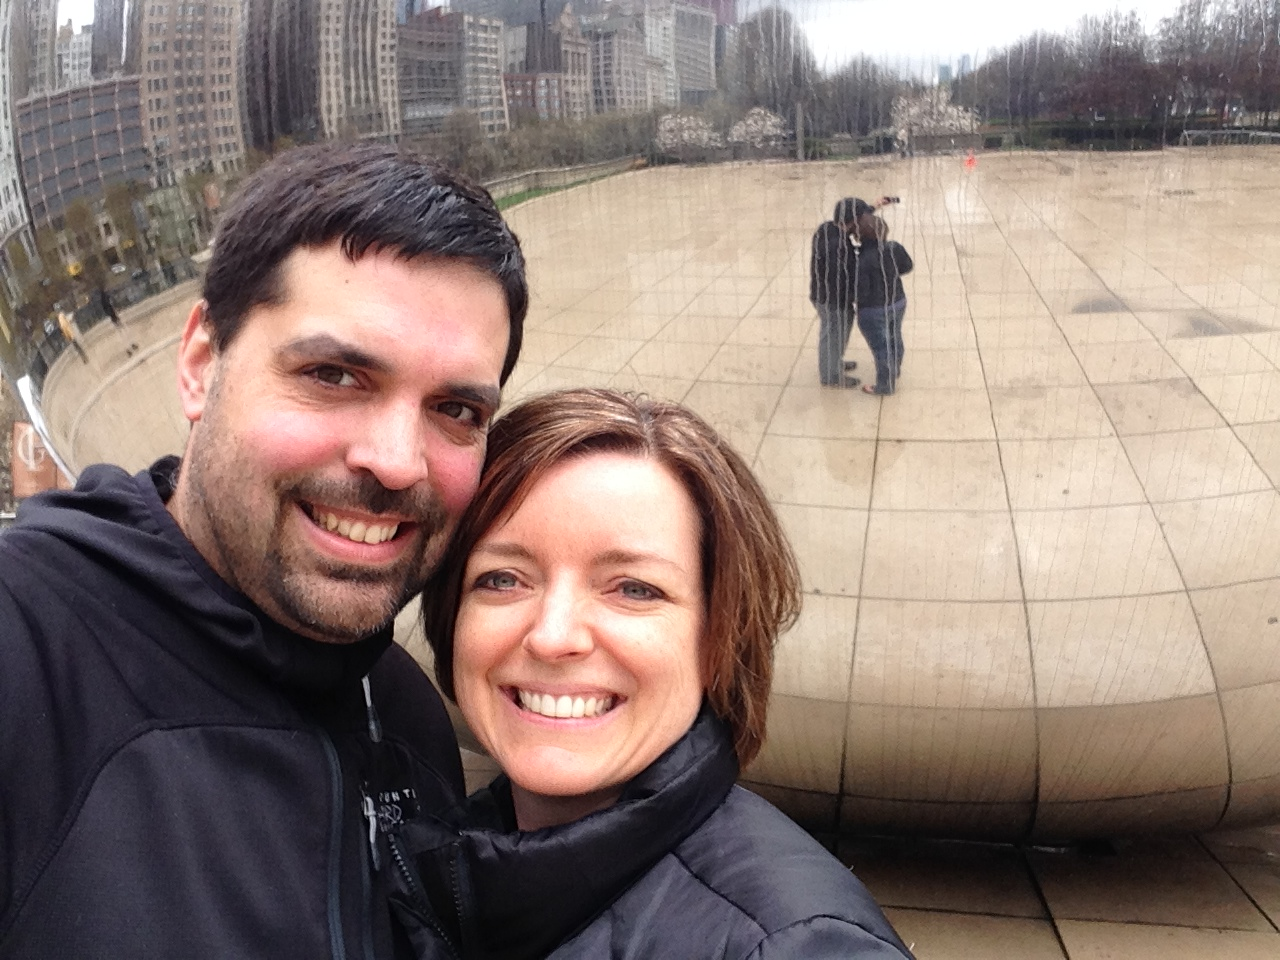 A fun little weekend date in Chicago last Spring.